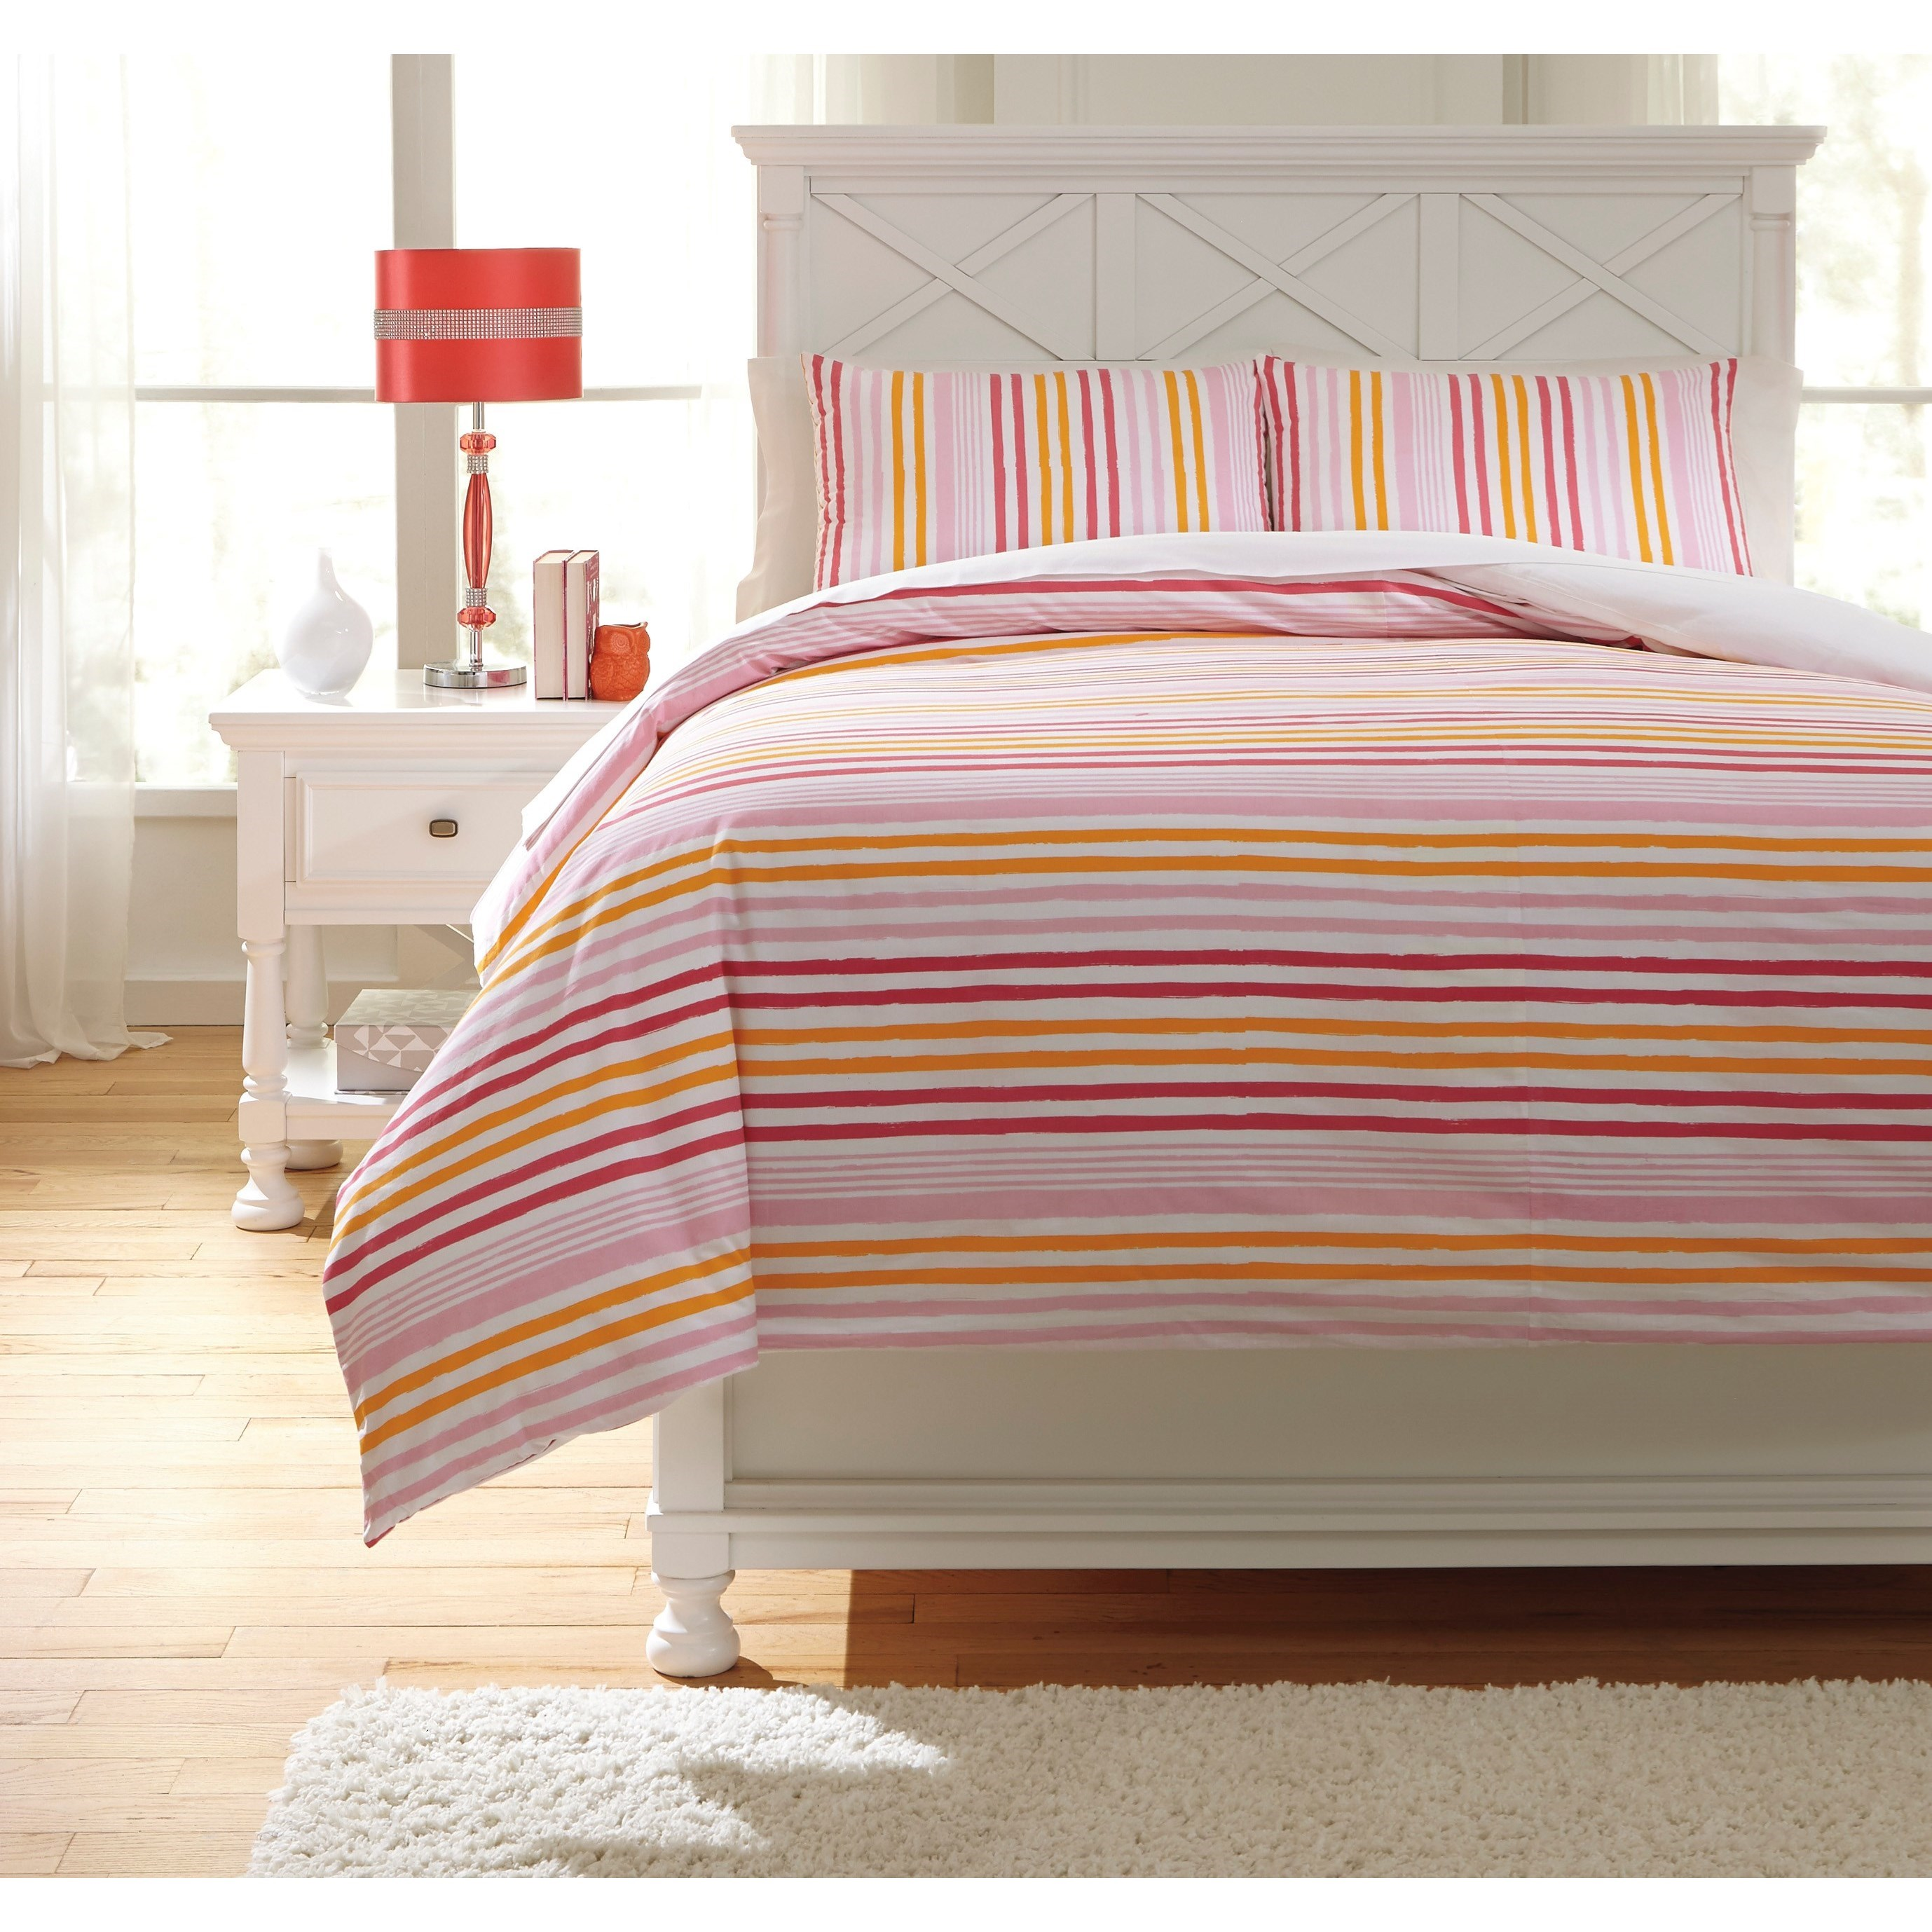 Bedding Sets Full Genista Multi Duvet Cover Set by Signature Design by Ashley at Lapeer Furniture & Mattress Center